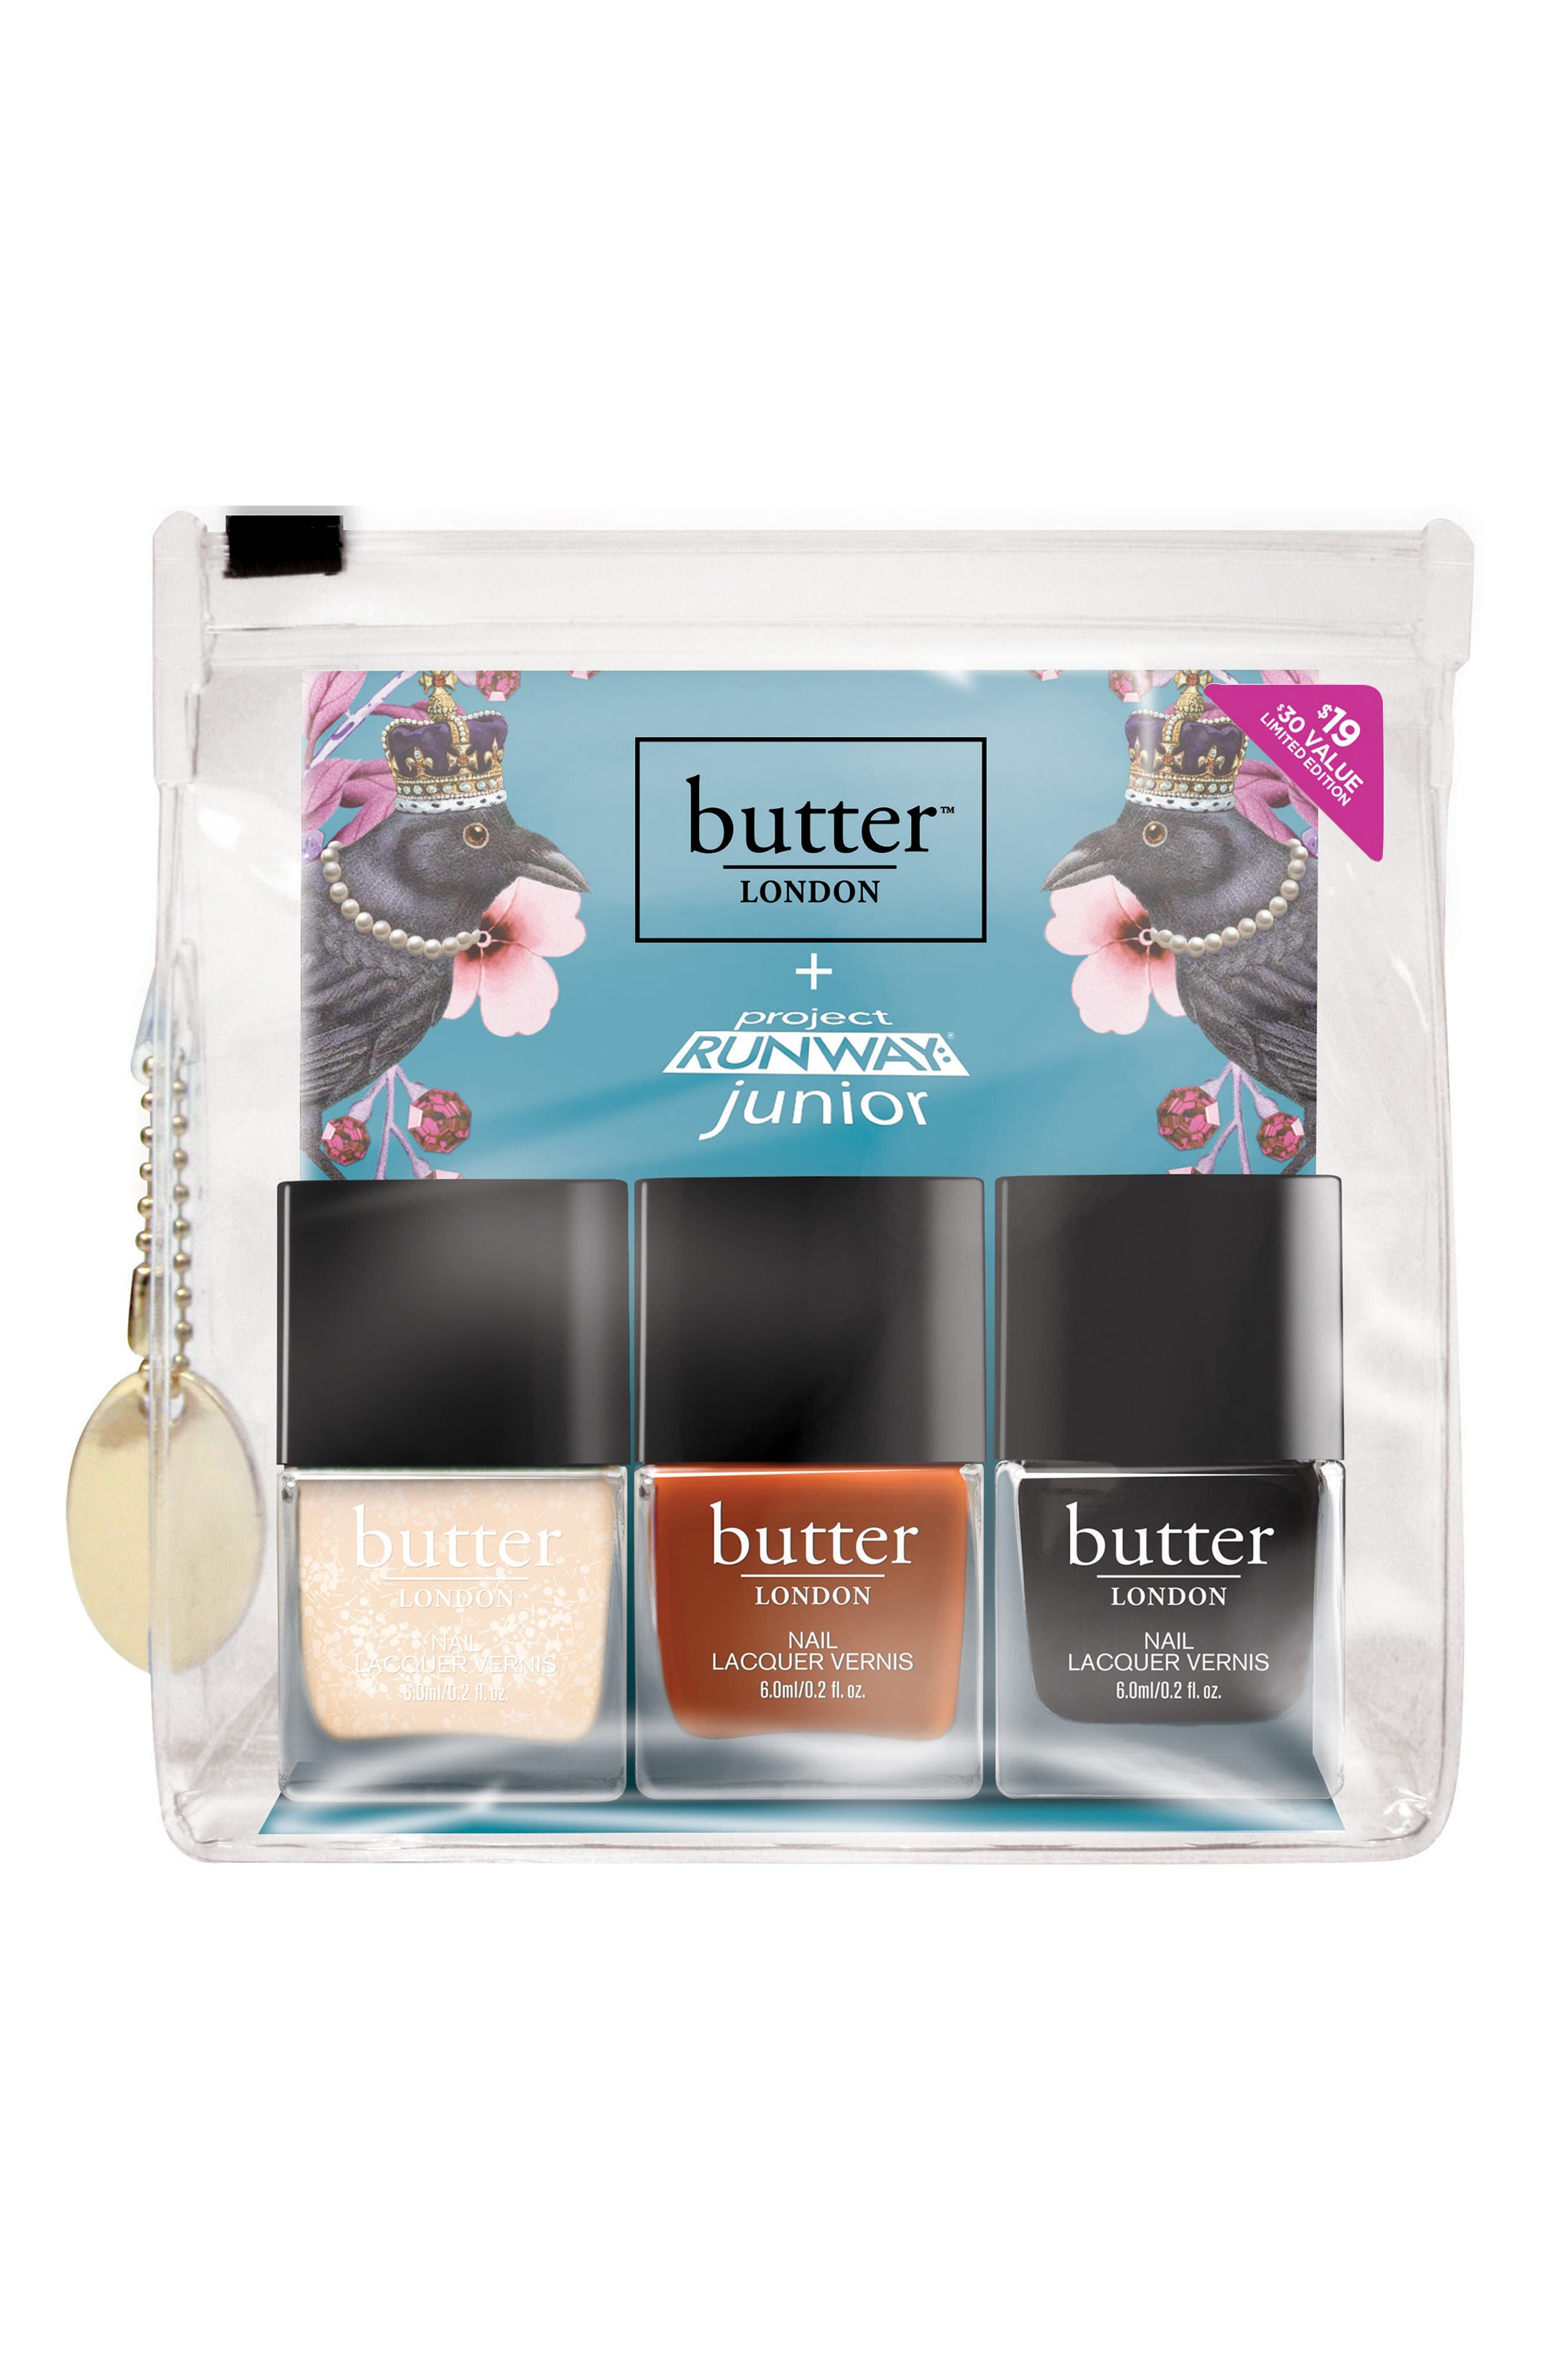 butter LONDON Project Runway® Junior Peace of Armor Nail Lacquer Set (Limited Edition) ($30 Value)